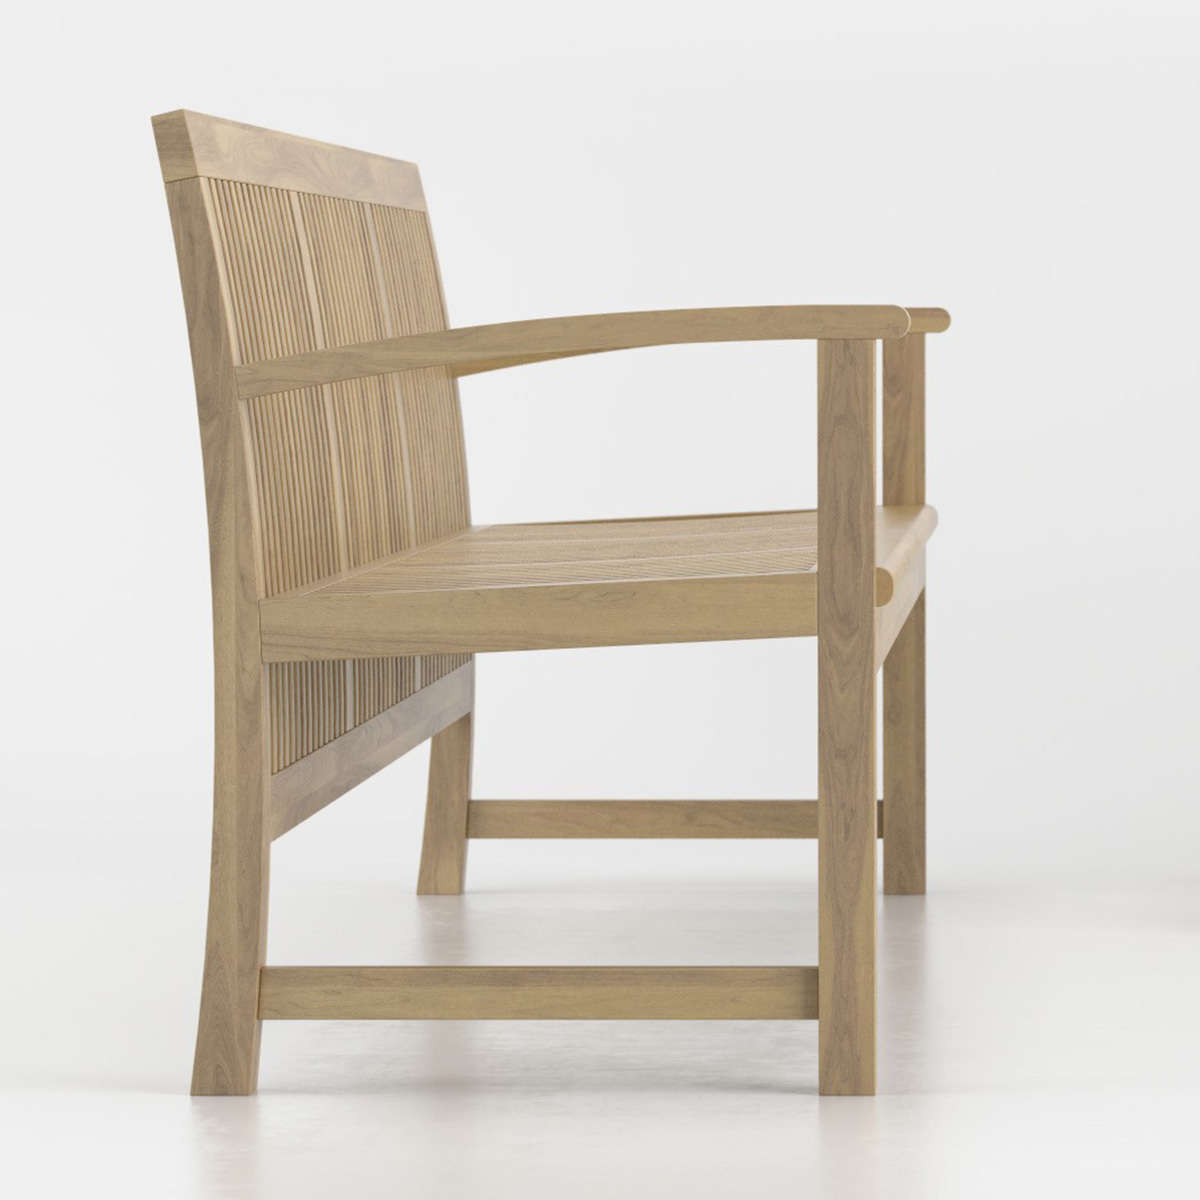 Tribu Praslin Bench Profile